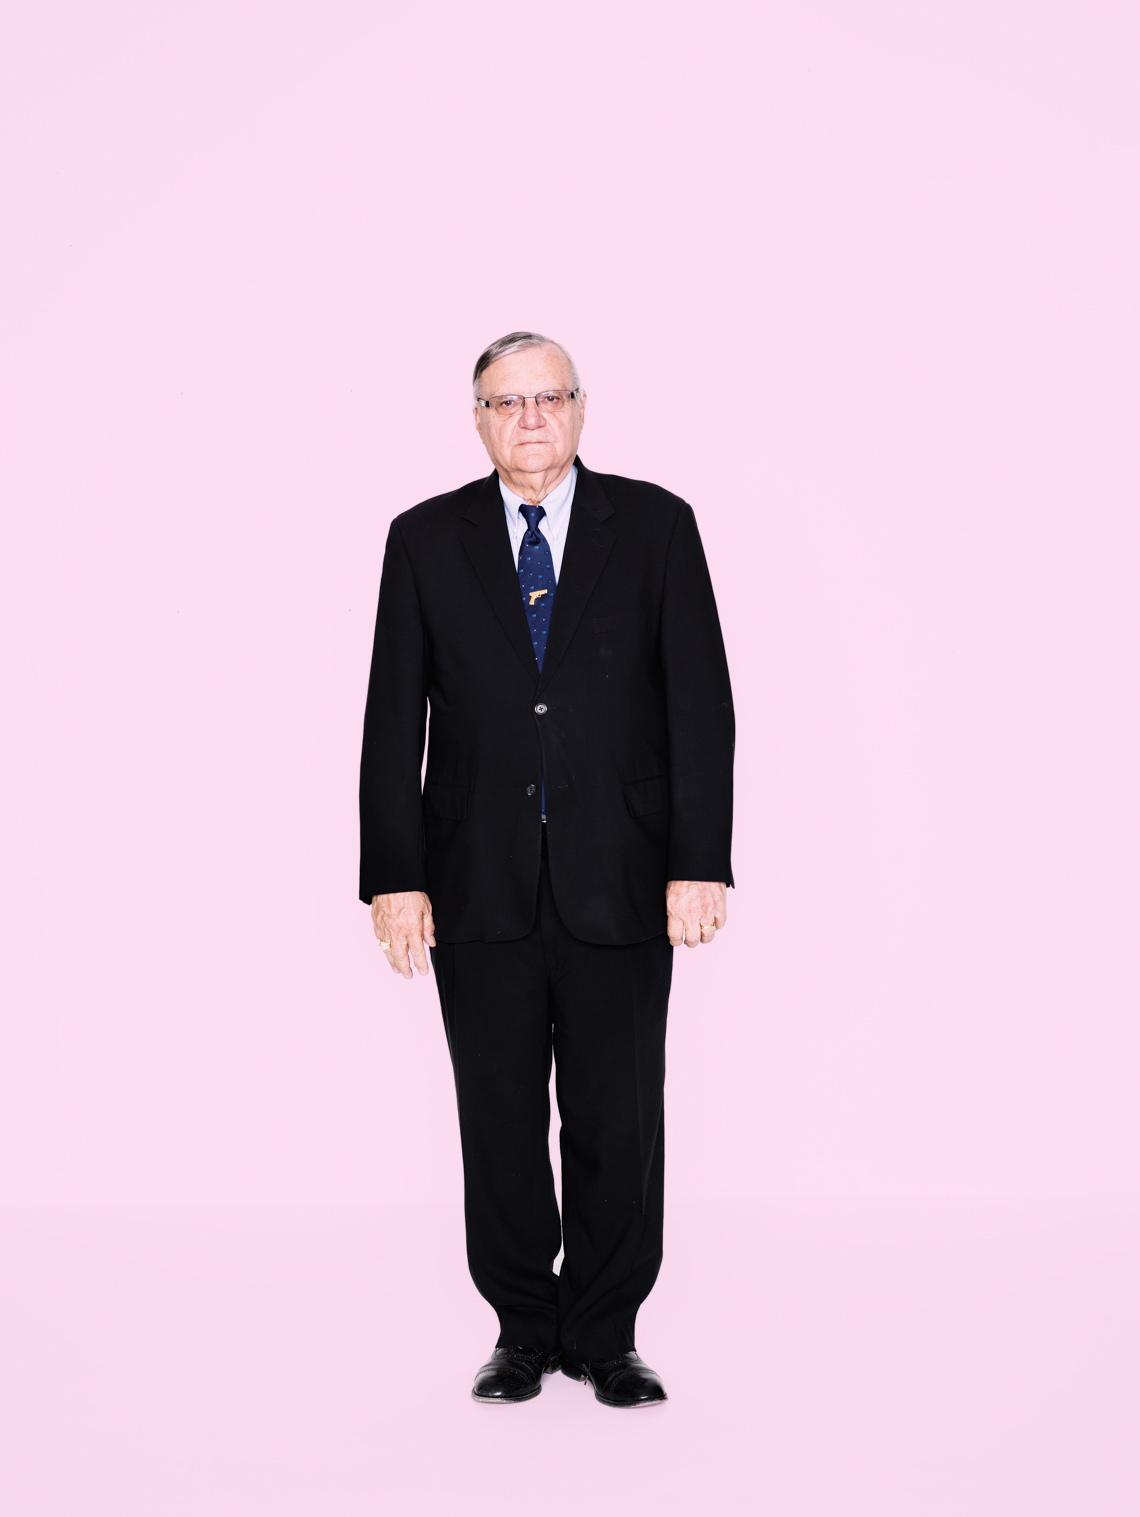 Joe Arpaio Pink